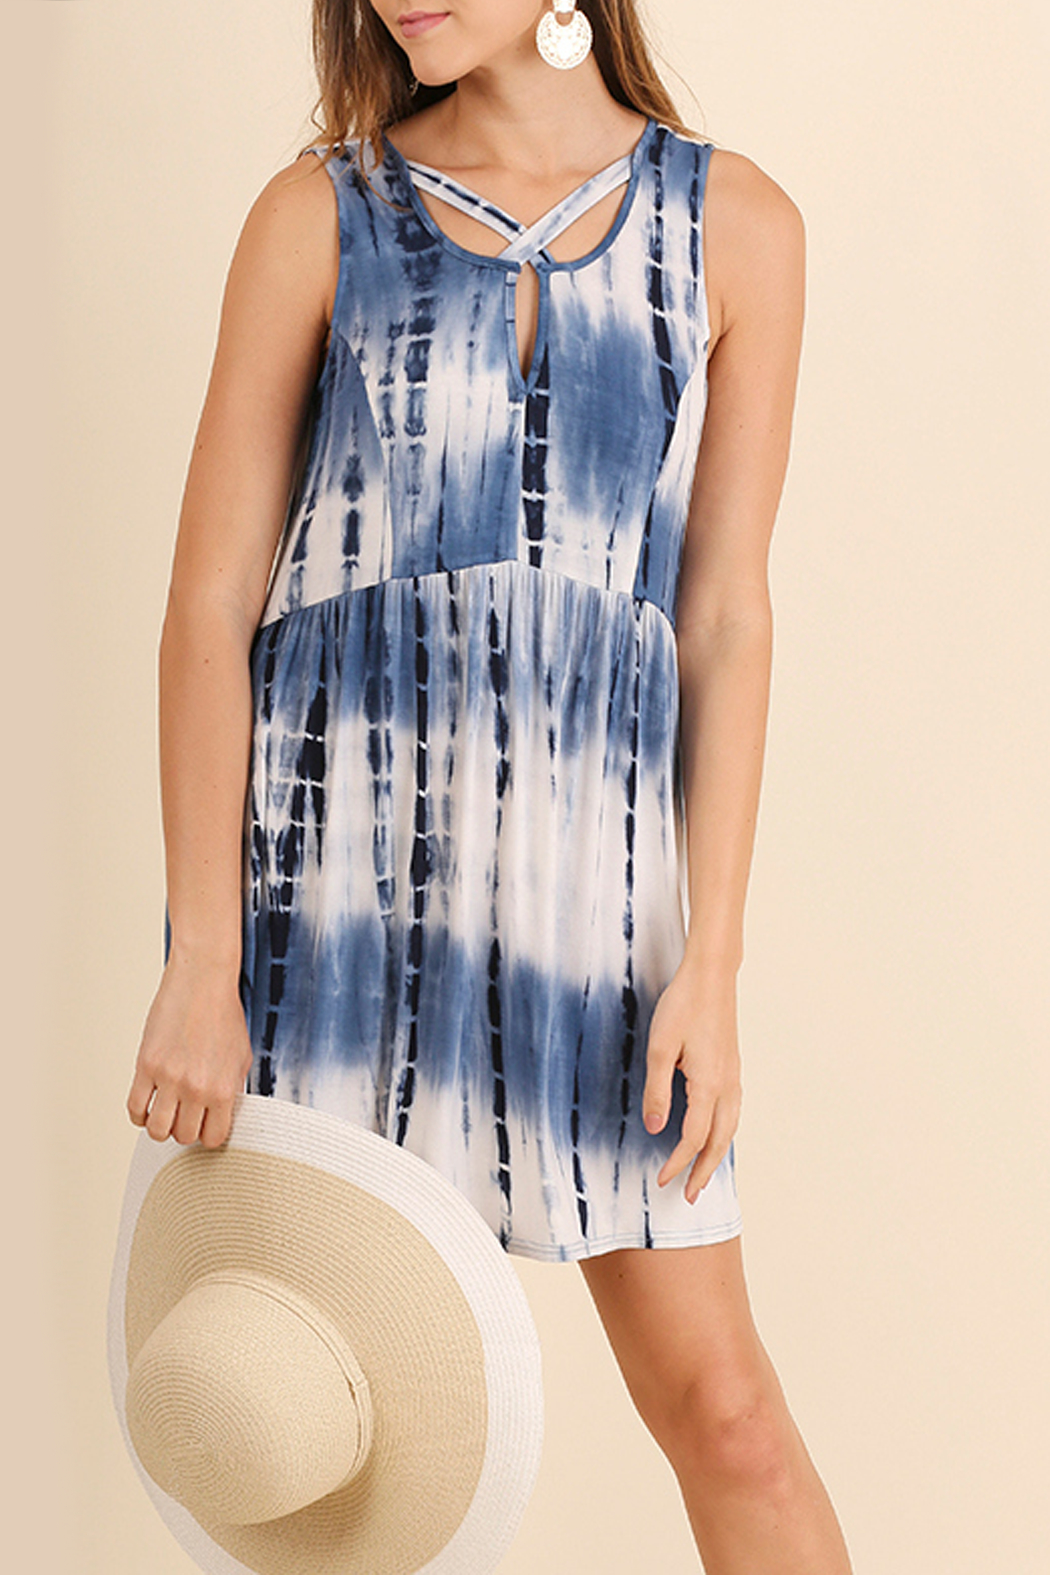 Umgee USA Tie Dye Pocket Dress - Front Cropped Image